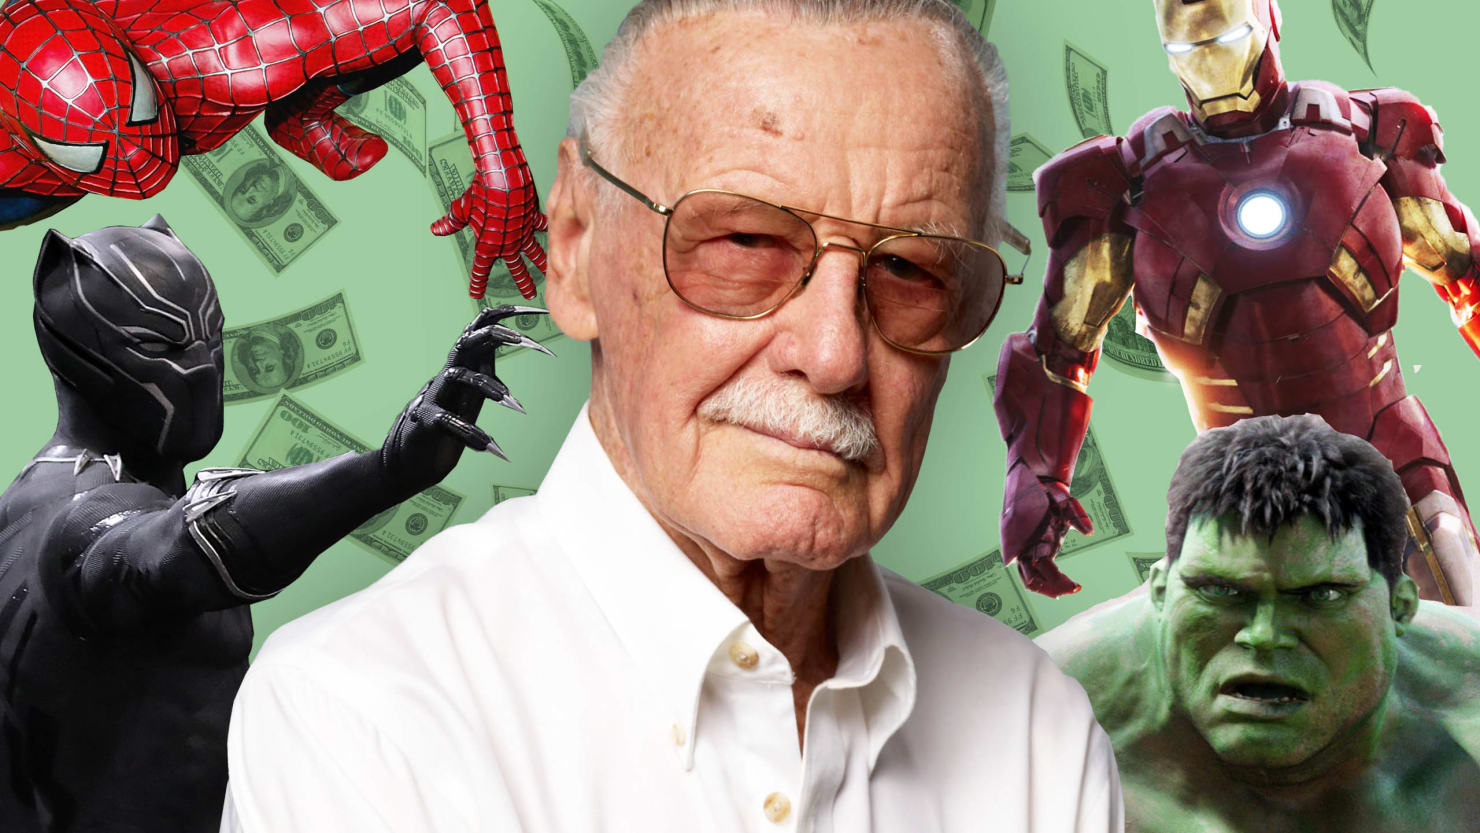 Picked Apart By Vultures The Last Days Of Stan Lee